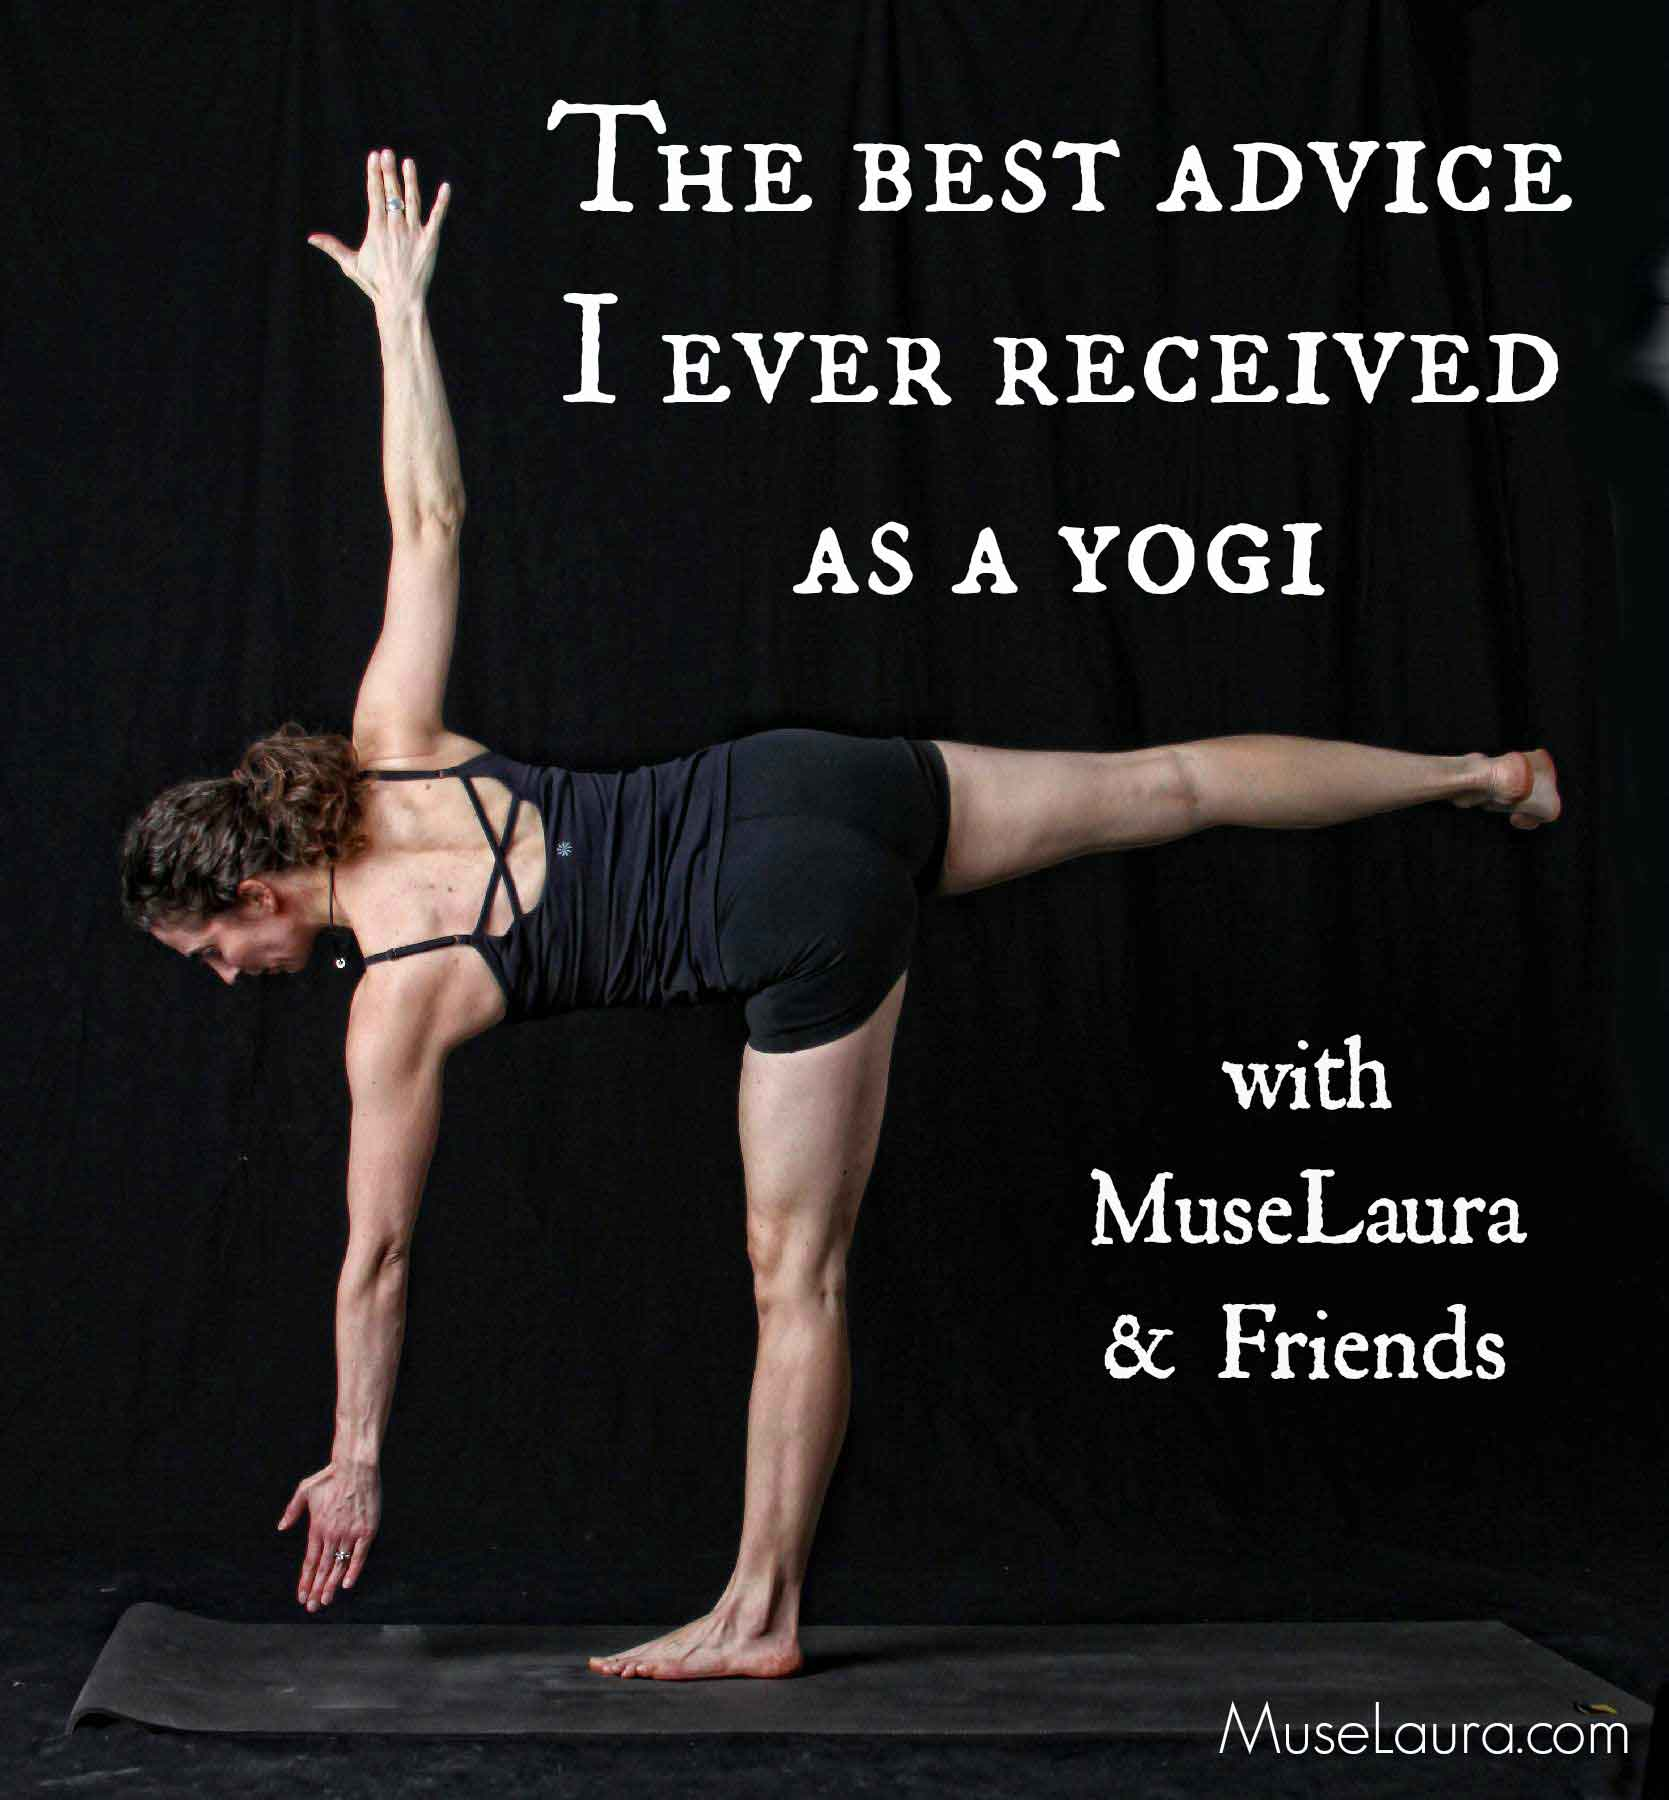 The Best Advice I Ever Received as a Yogi